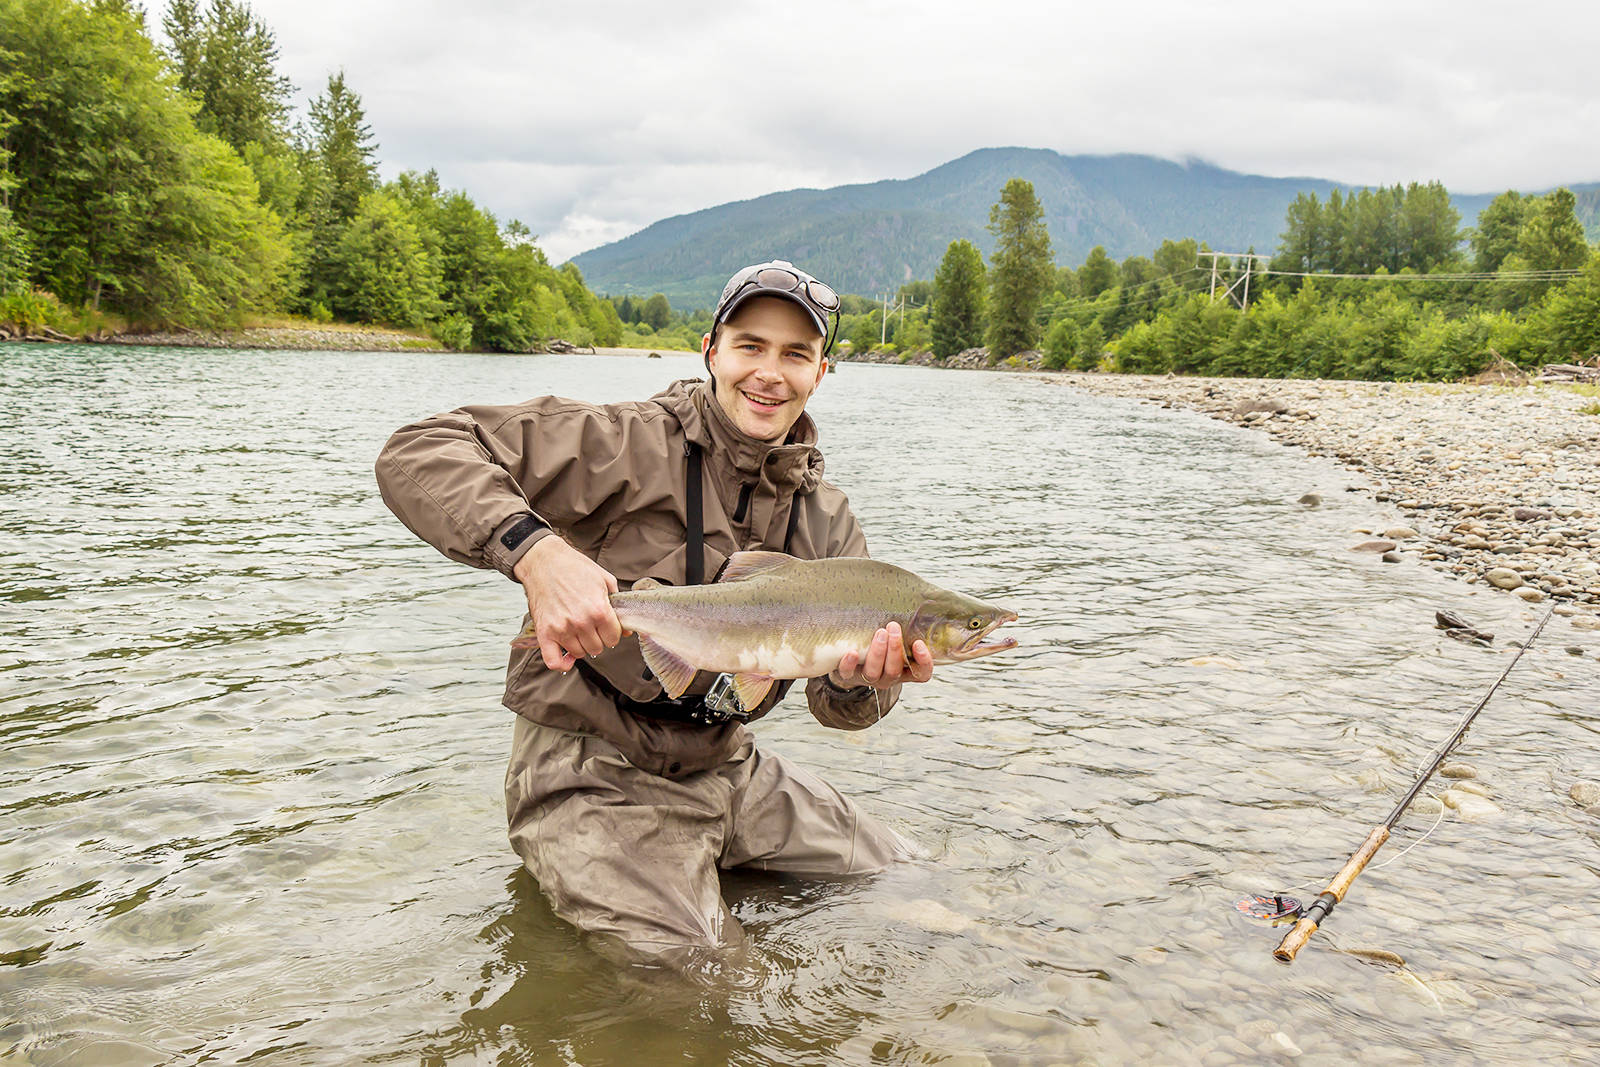 B.C.'s Family Fishing Weekend is coming up June 18 to 20.